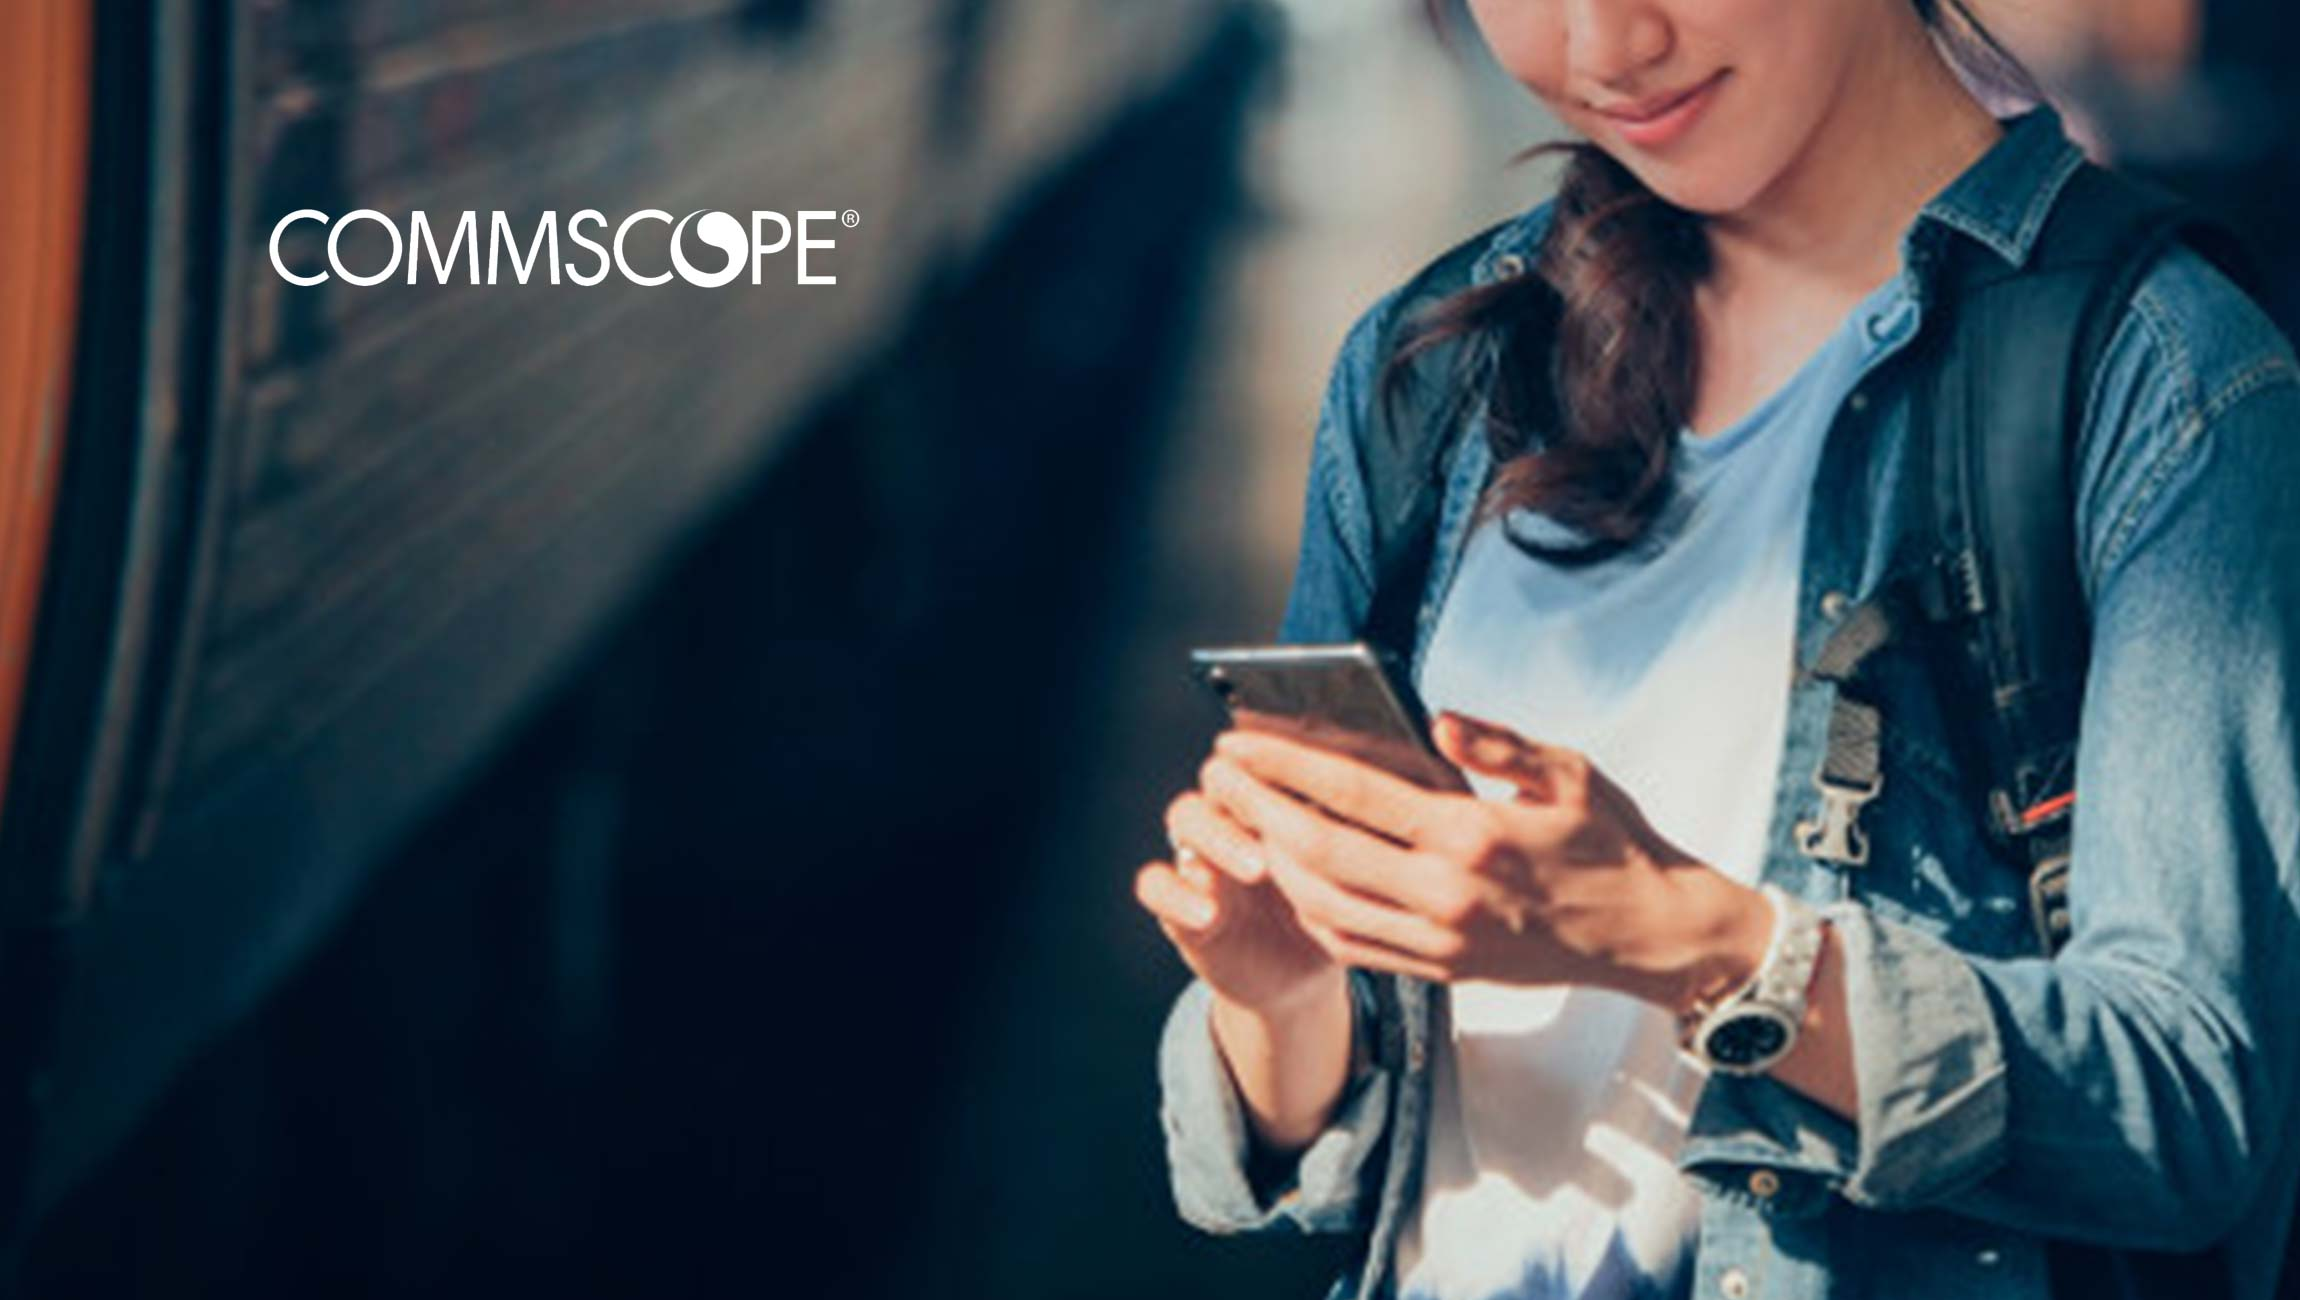 CommScope Deploys Video Advertising Solutions Across a4's Video Footprint 1